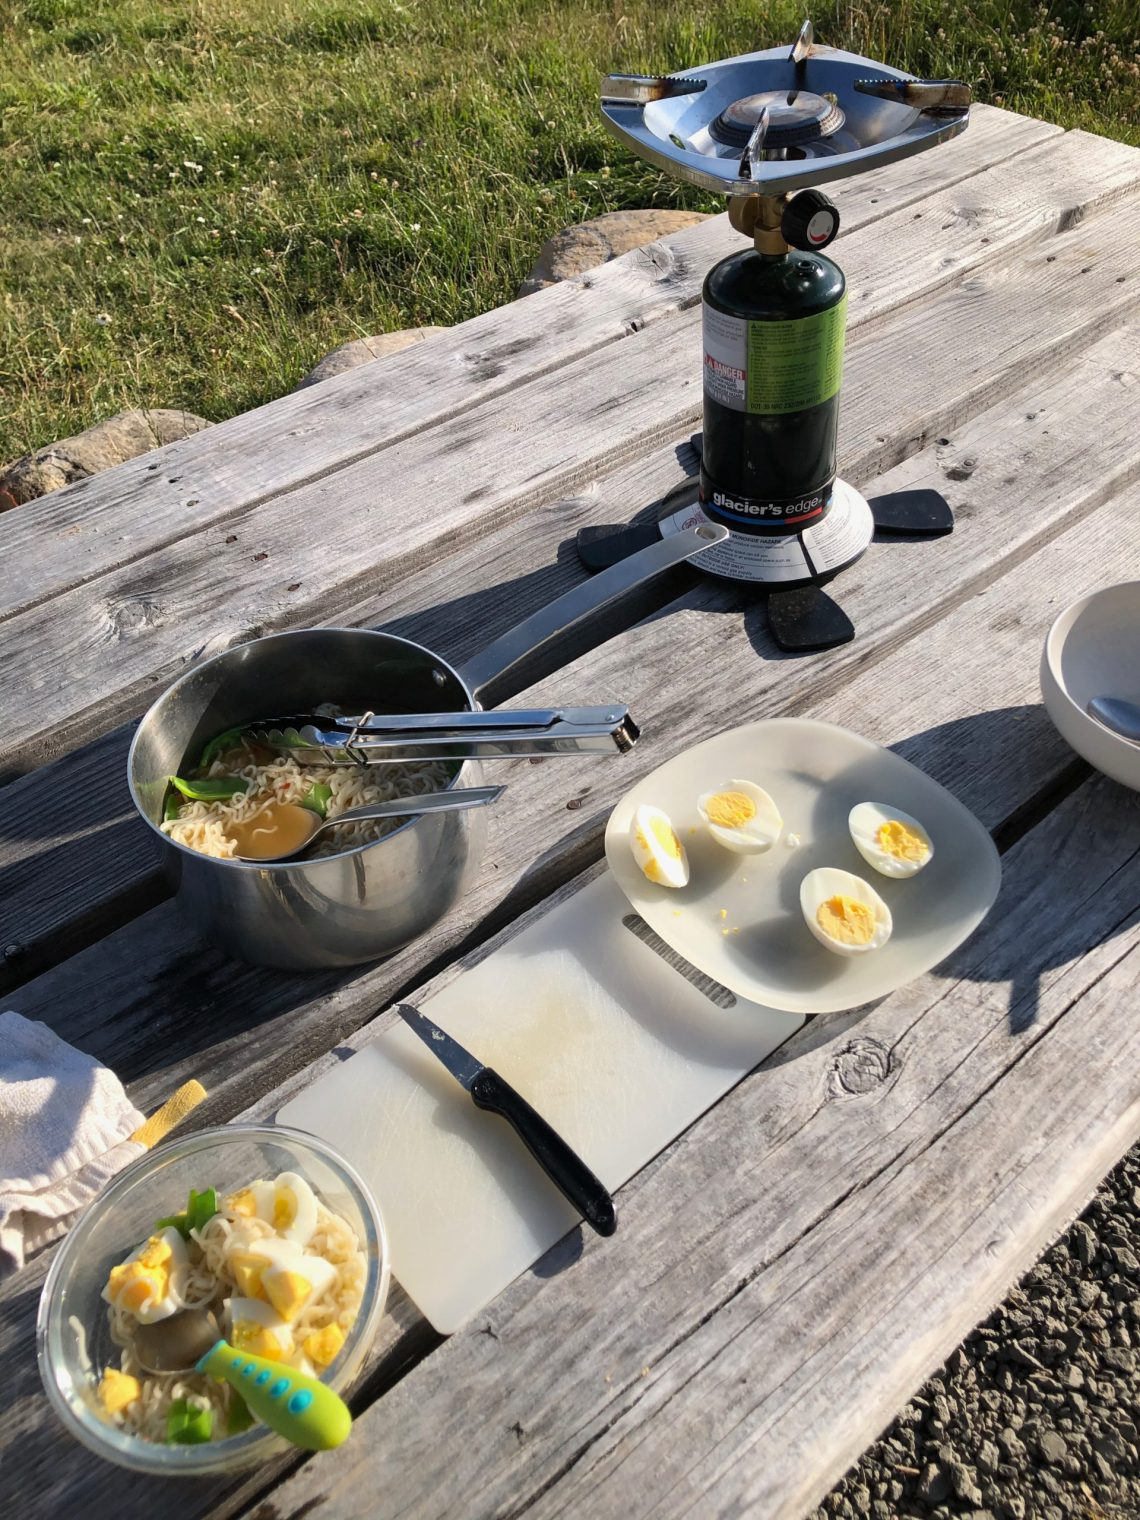 Camping dinner of ramen with hard boiled eggs